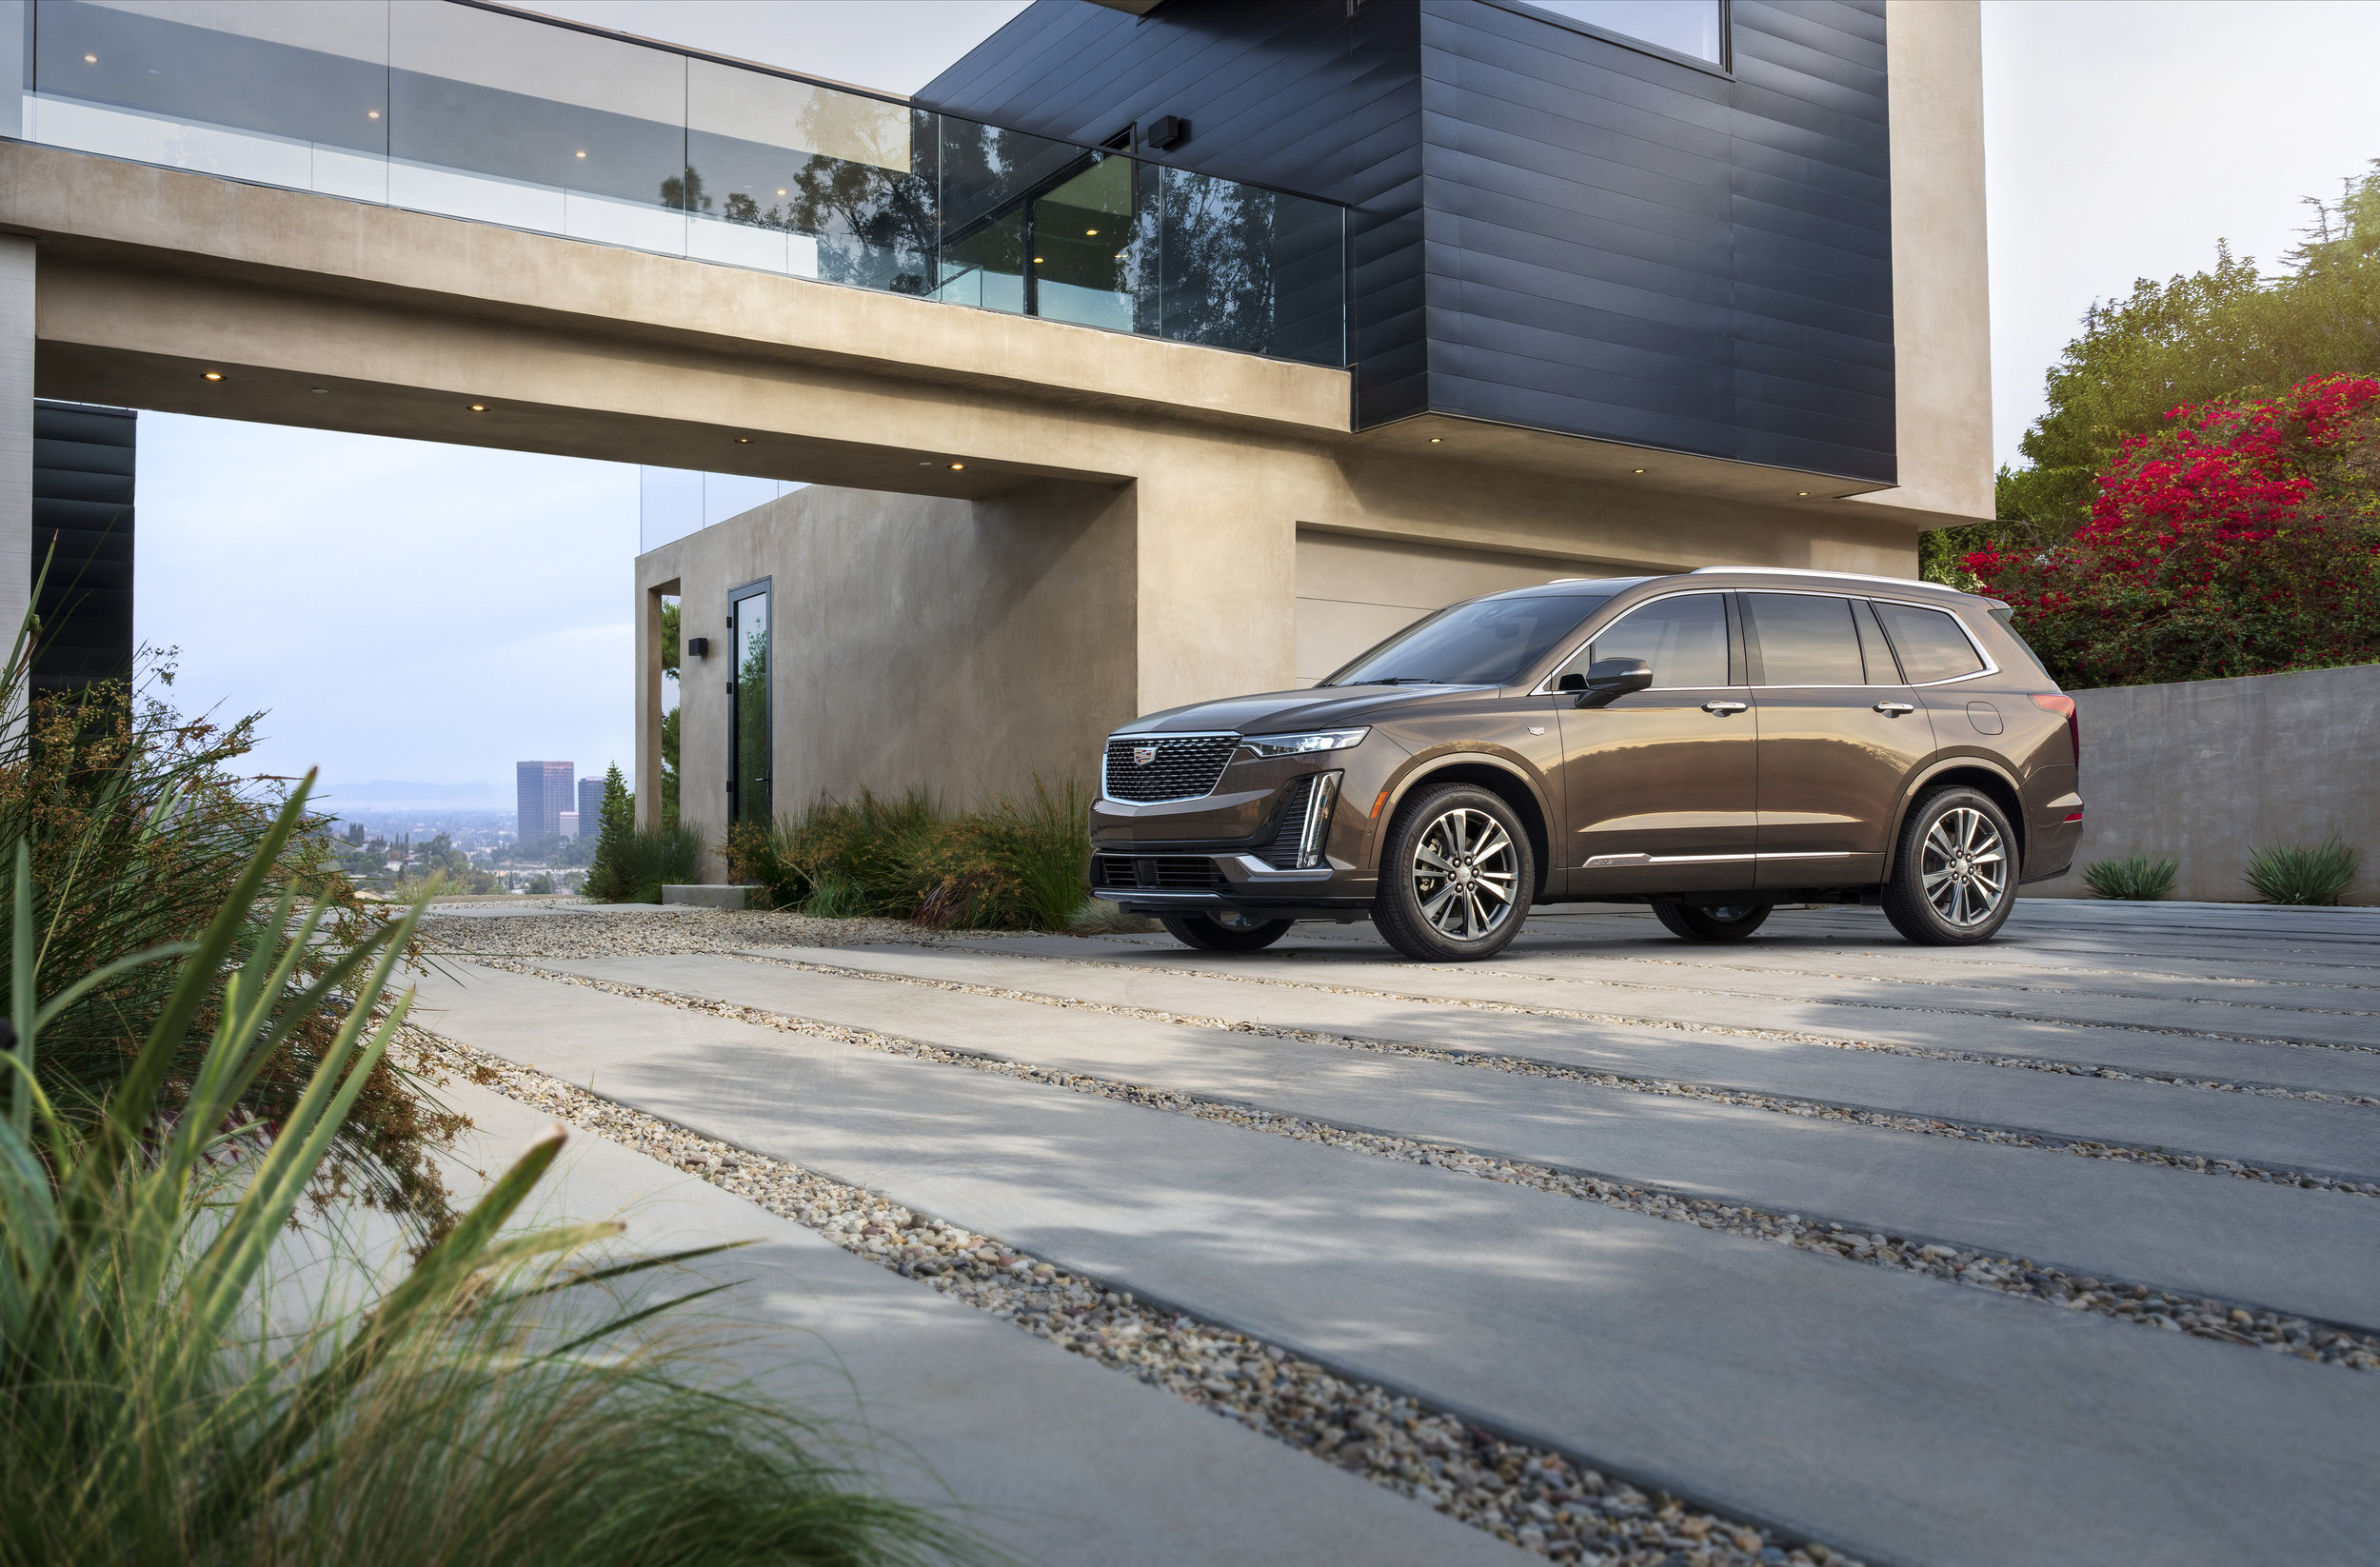 2020-Cadillac-XT6-Luxury-012.jpg